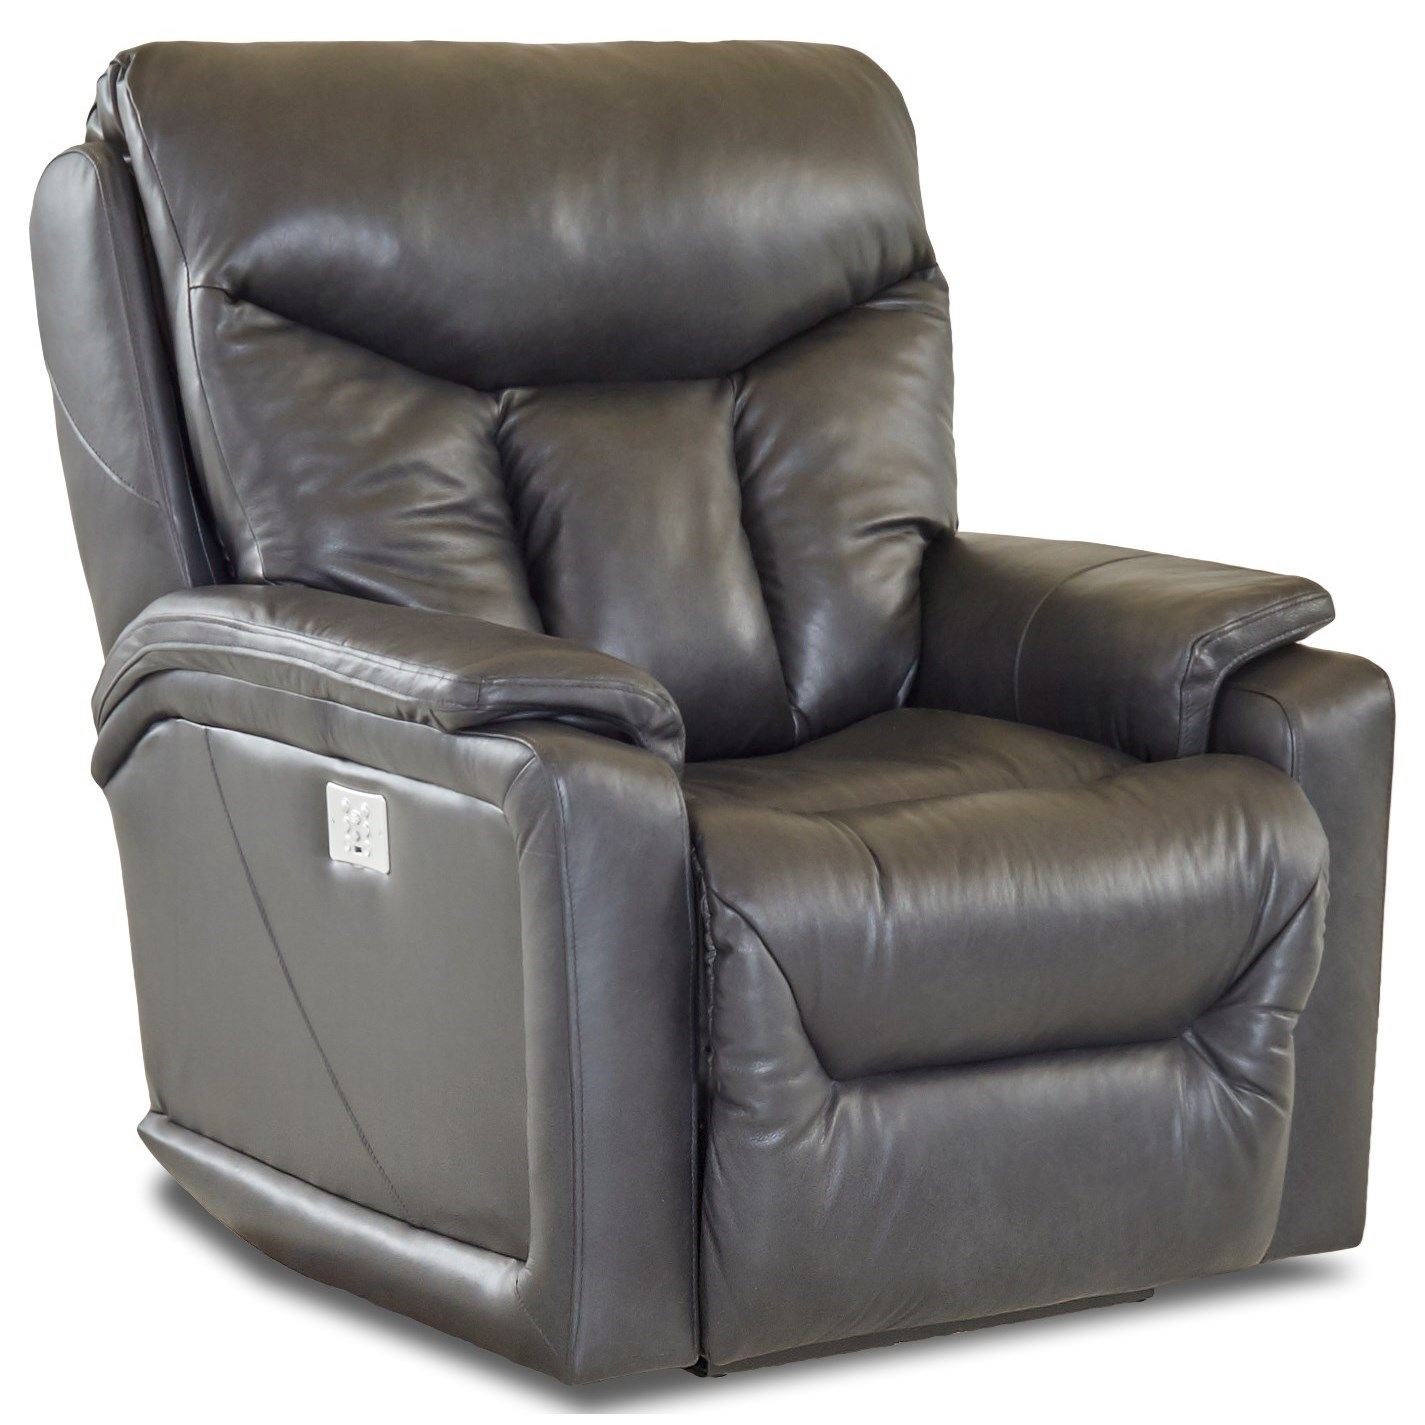 Power Rocker Recliner w/ Pwr Head/Lumbar